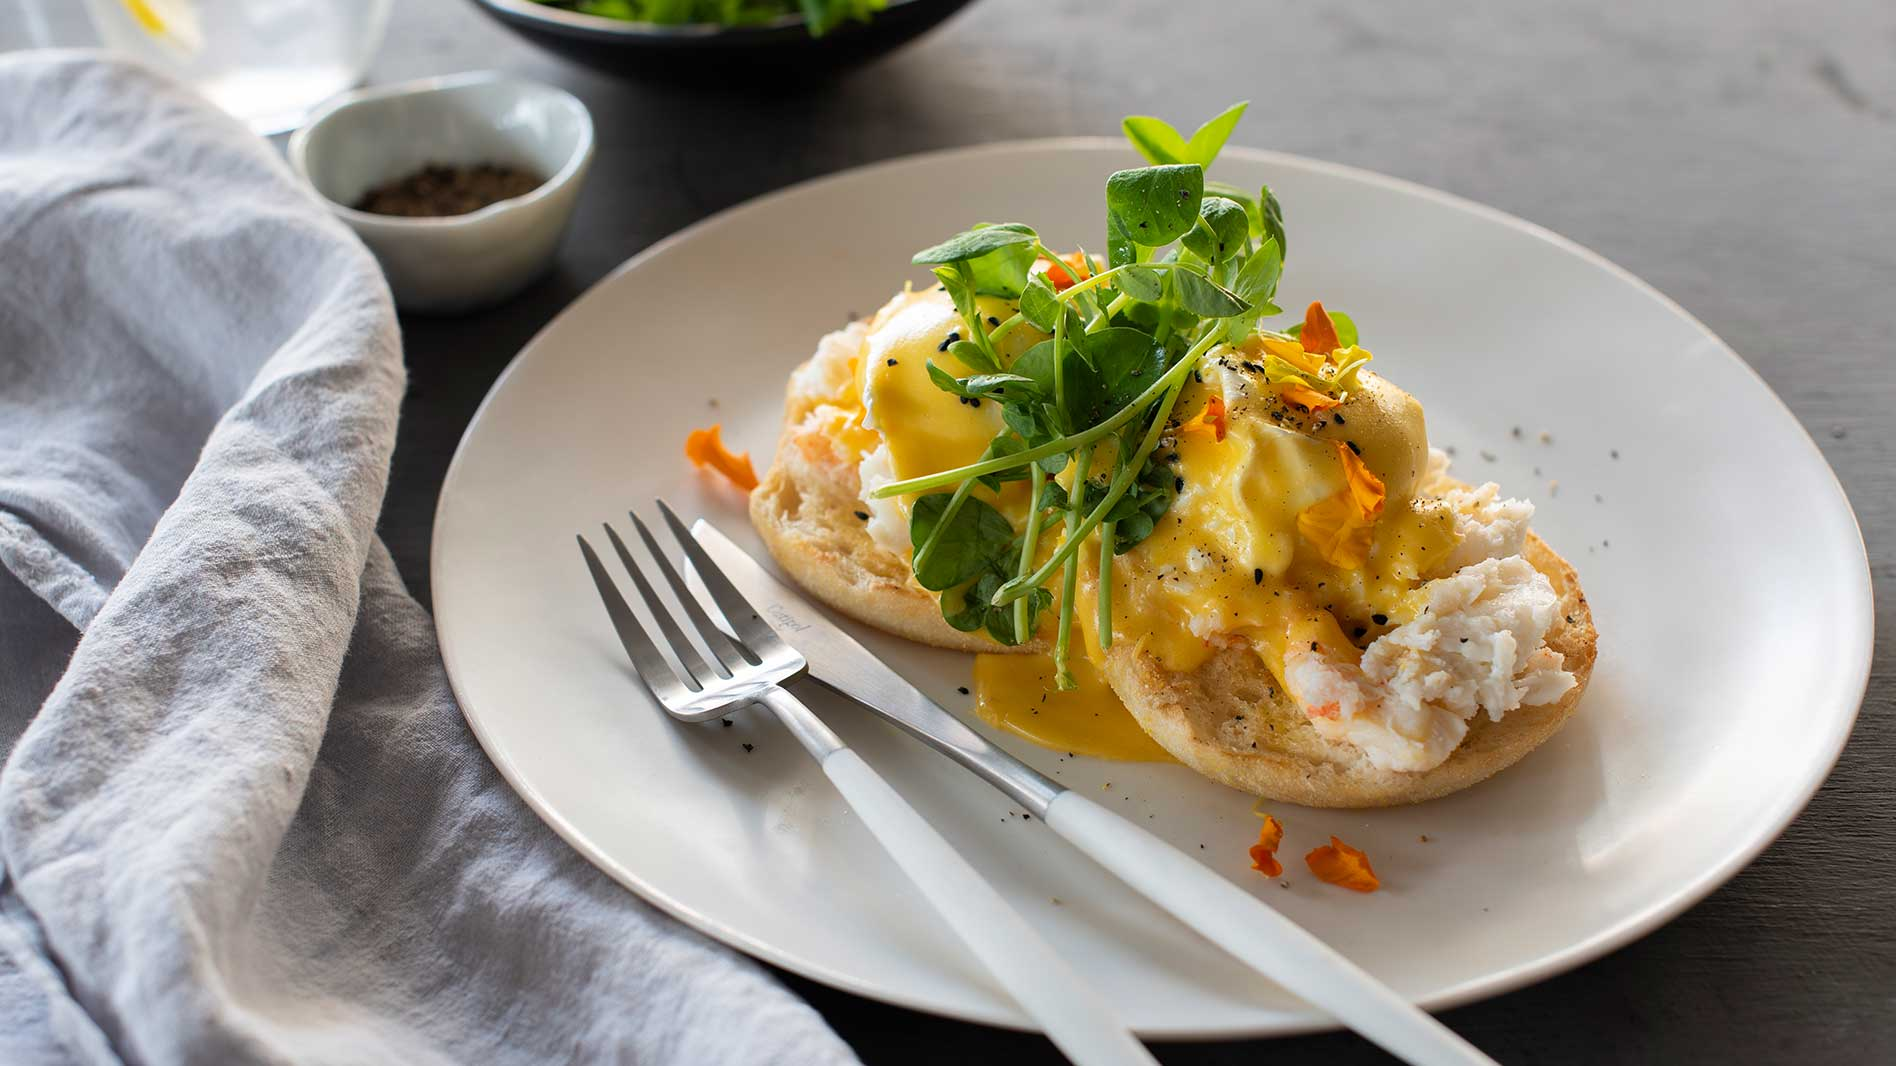 Spanner crab and wasabi eggs benedict